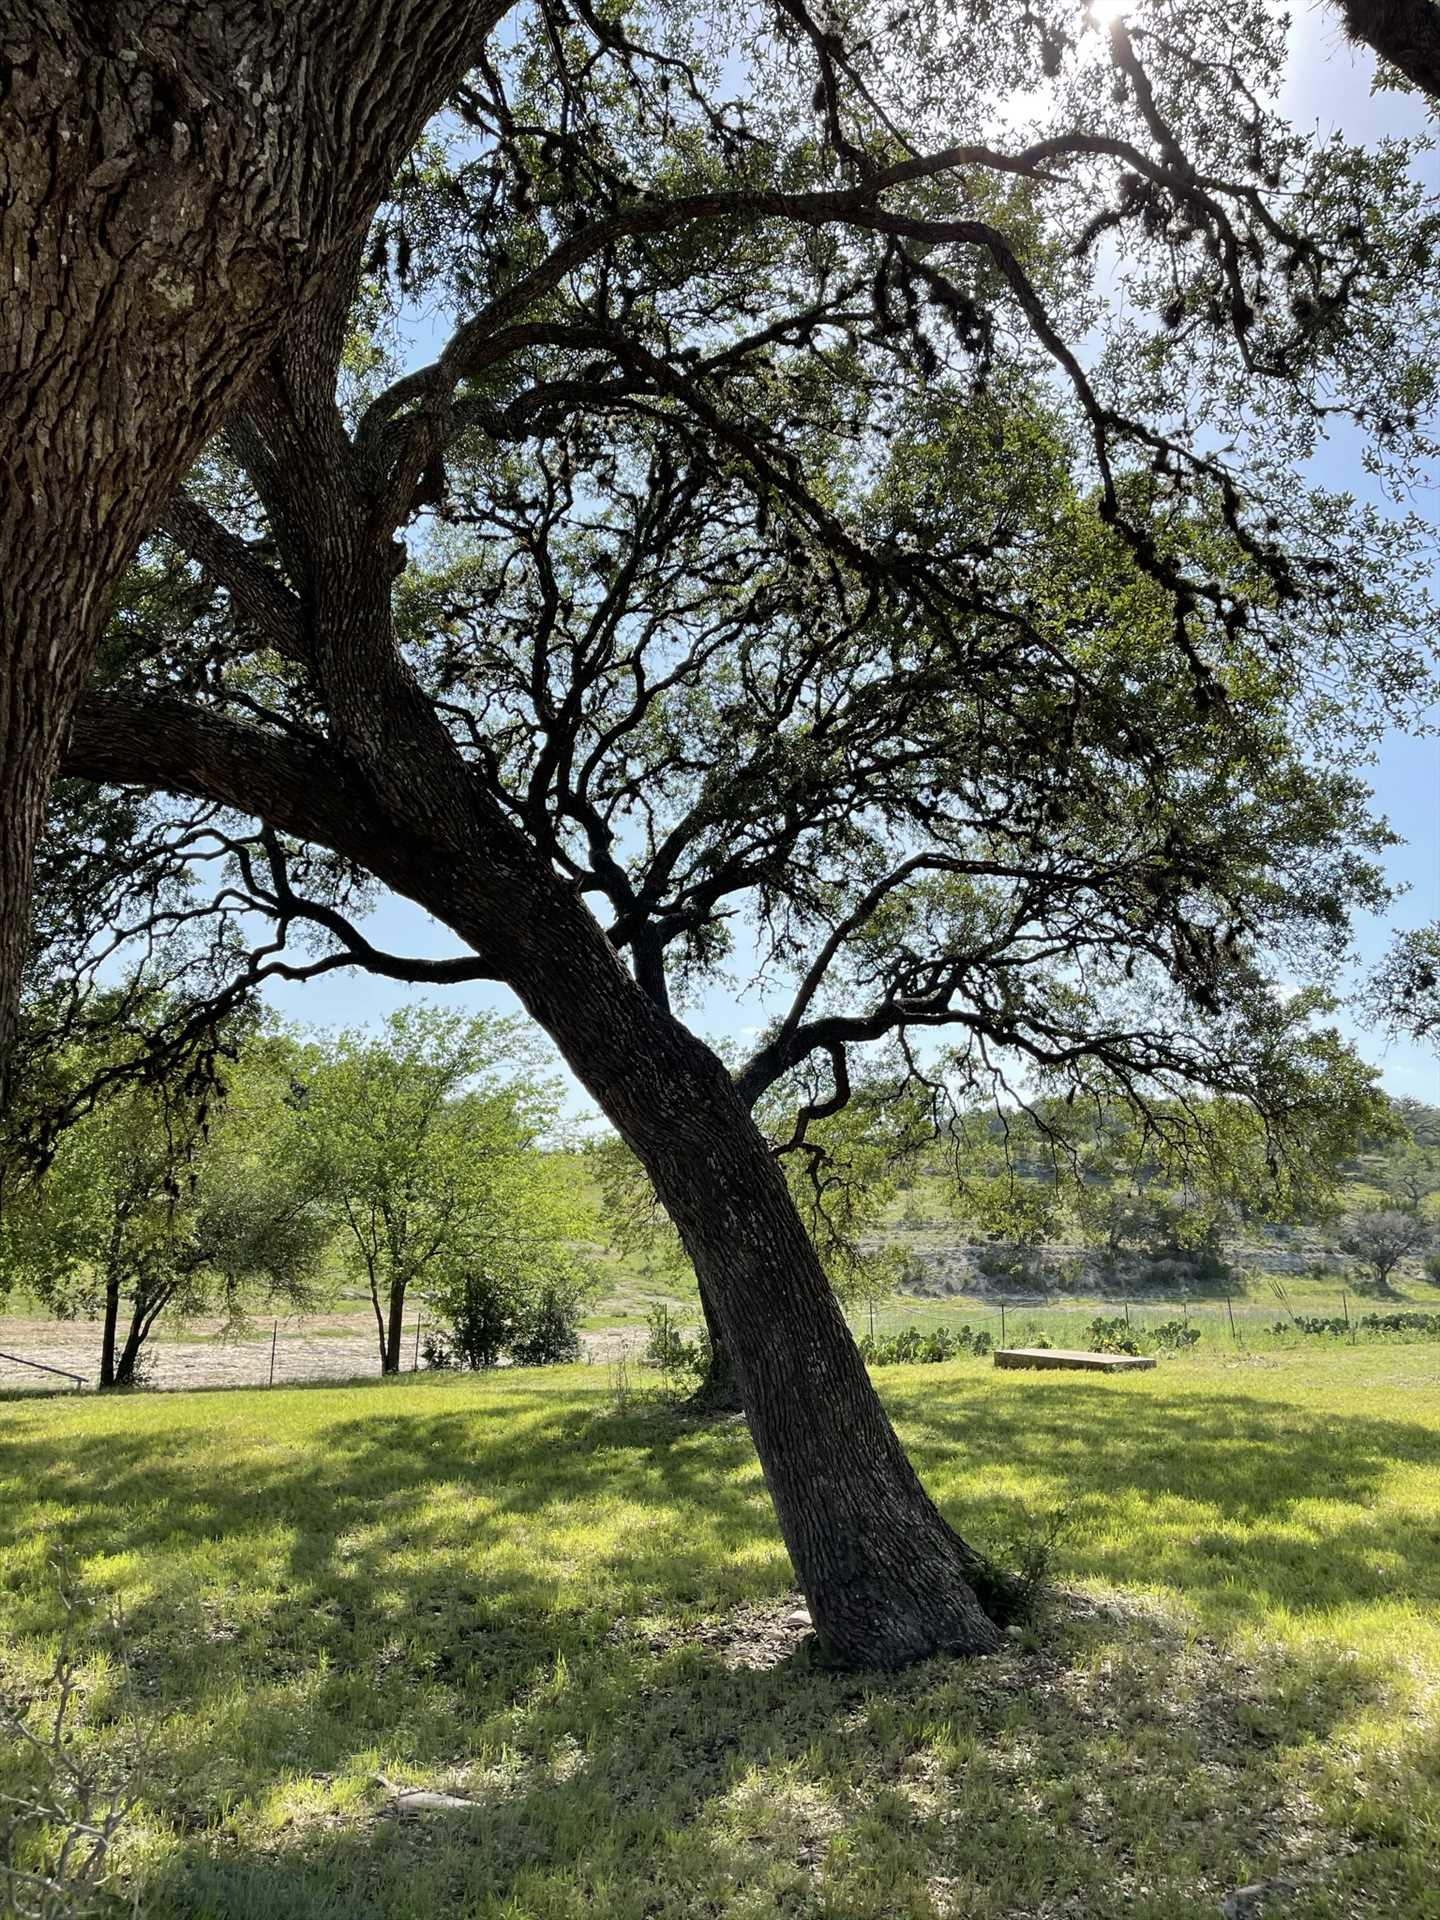 If you'd like to see more of our gorgeous Texas Hill Country, there are plenty of winding roads in the vicinity, on which you can take a scenic tour!